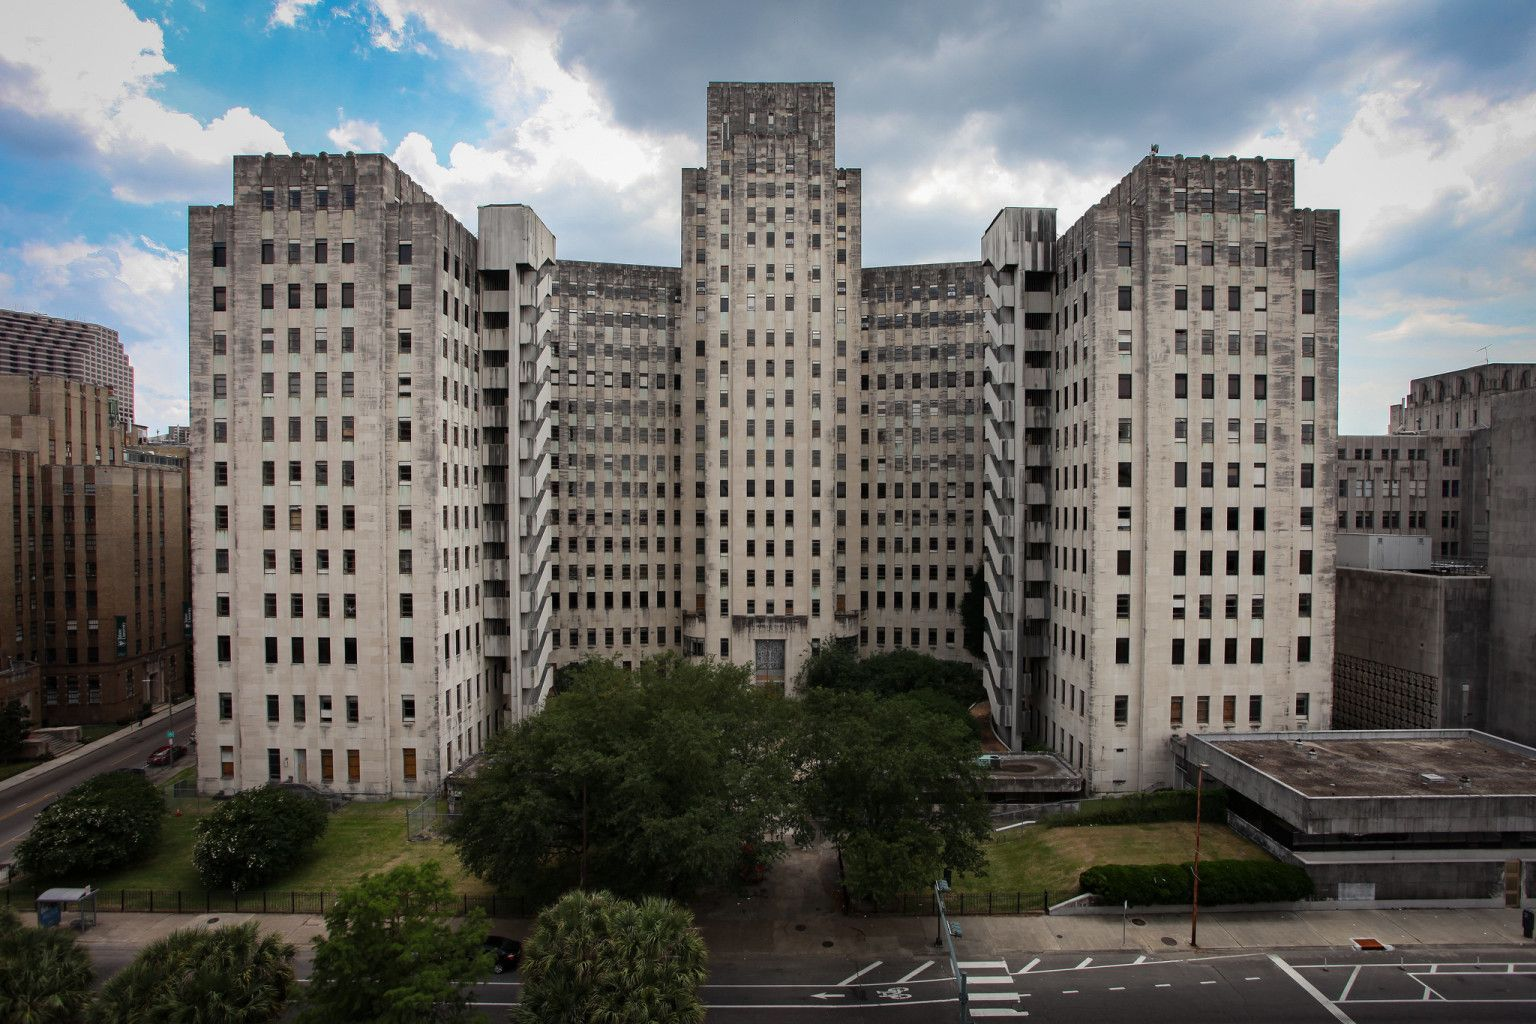 Charity hospital architecture photography buildings